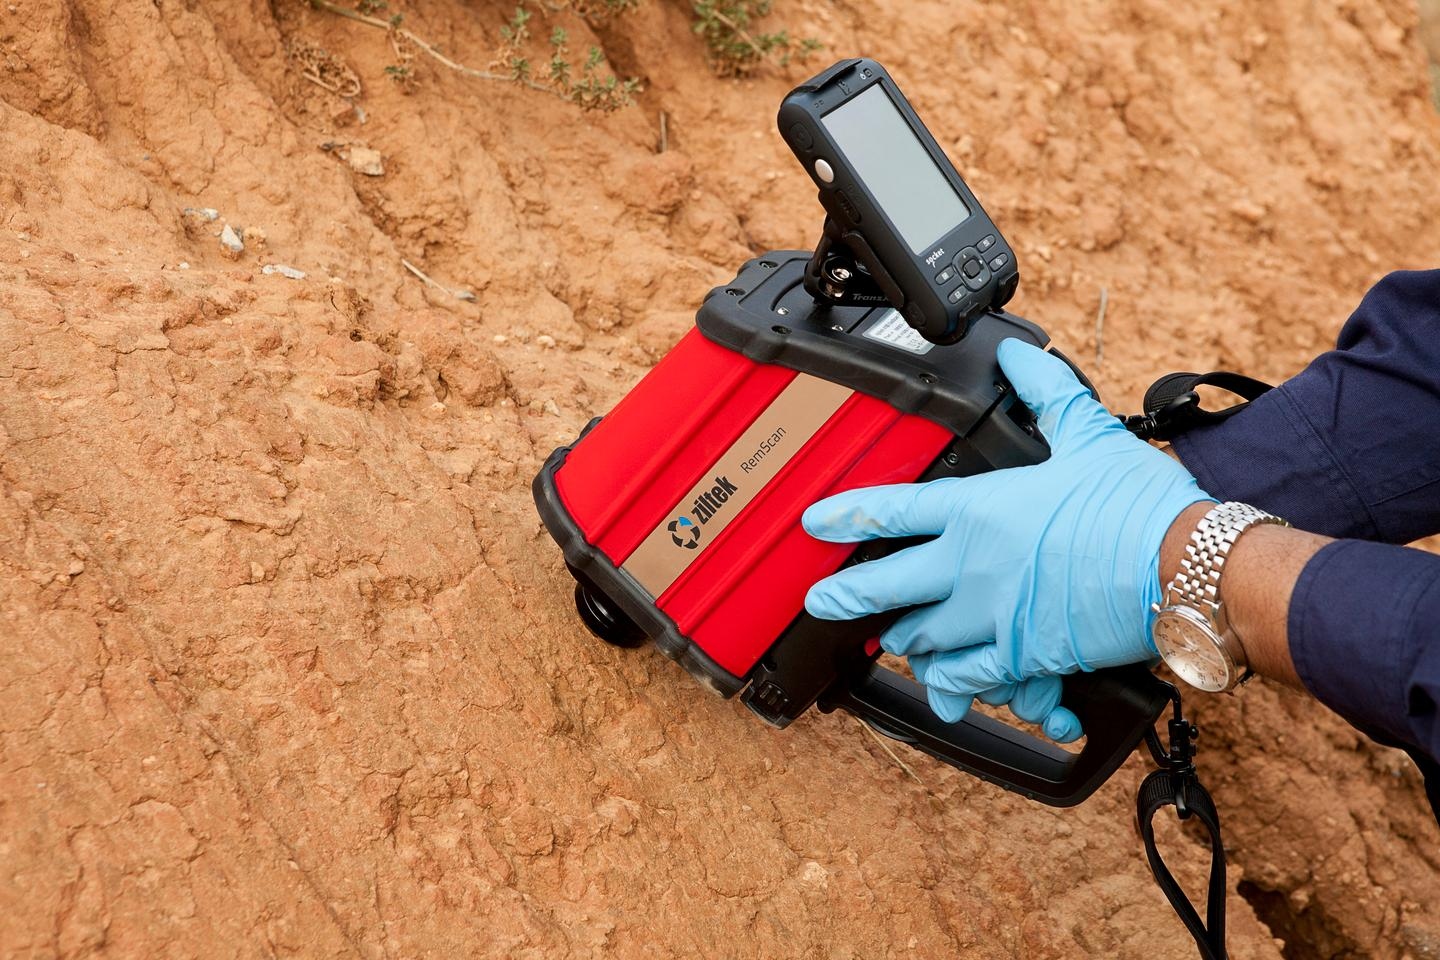 RemScan puts a self-contained soil analyzer in your hand (Photo: ZilteK)